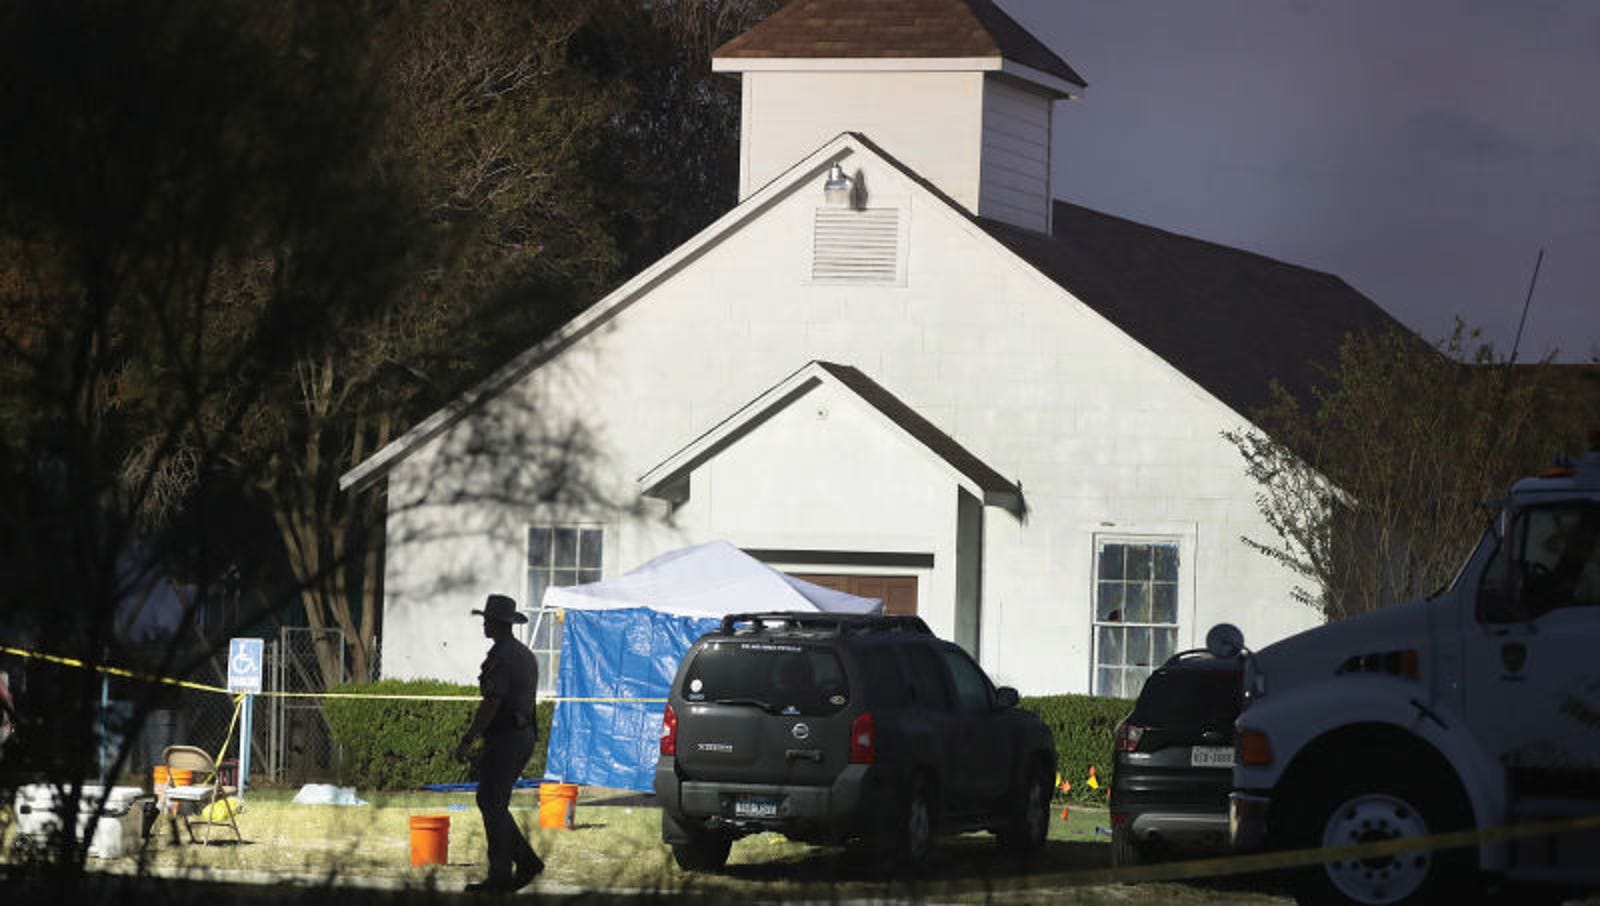 Nation To Wait For More Facts On Texas Shooting Before Doing Absolutely Nothing About It